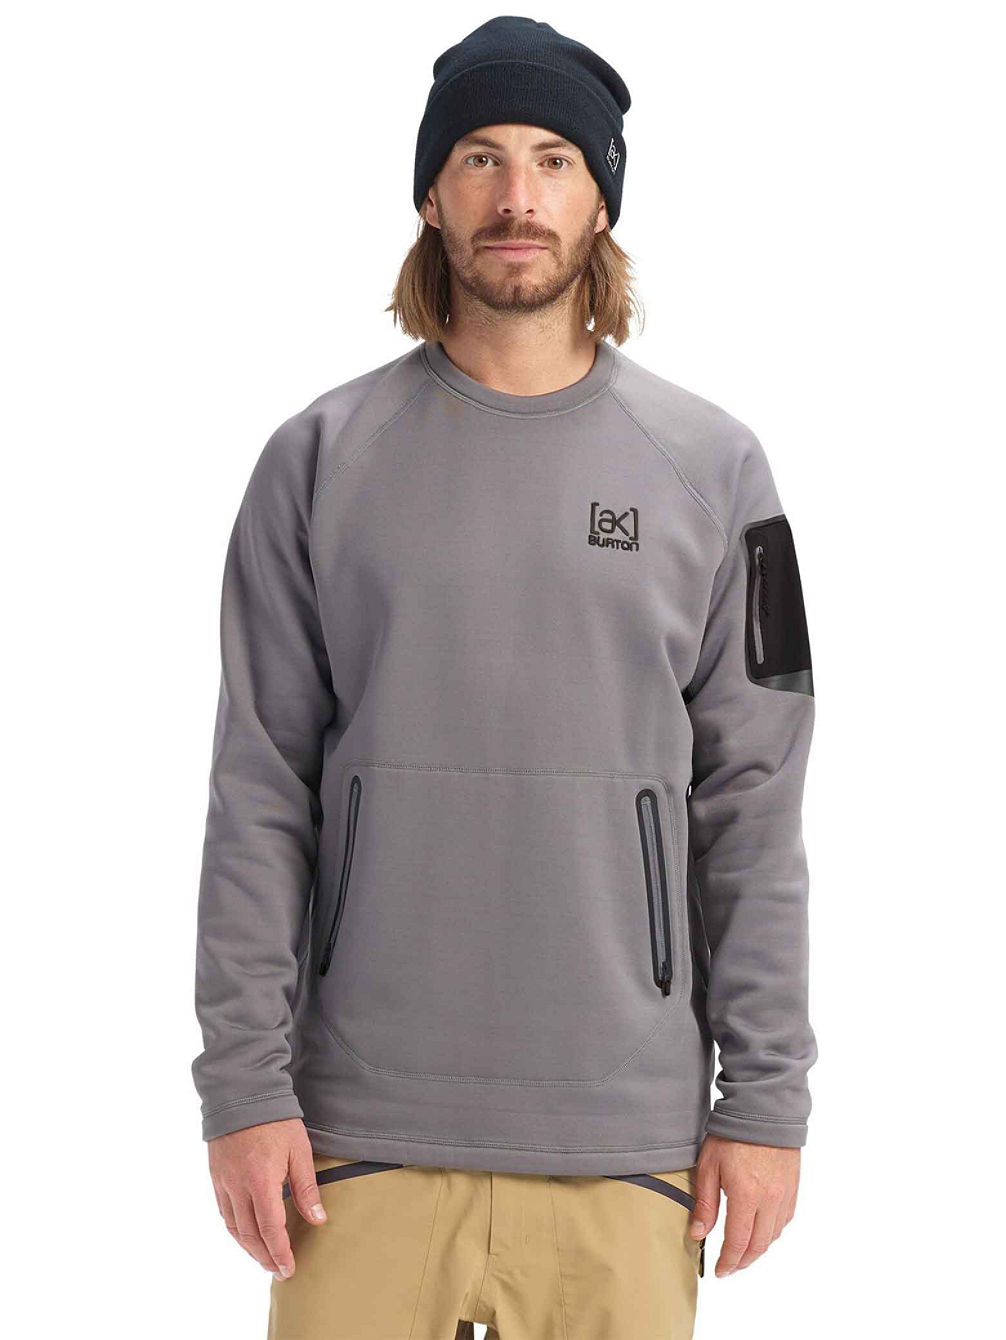 ak Piston Crew Fleece Pulover